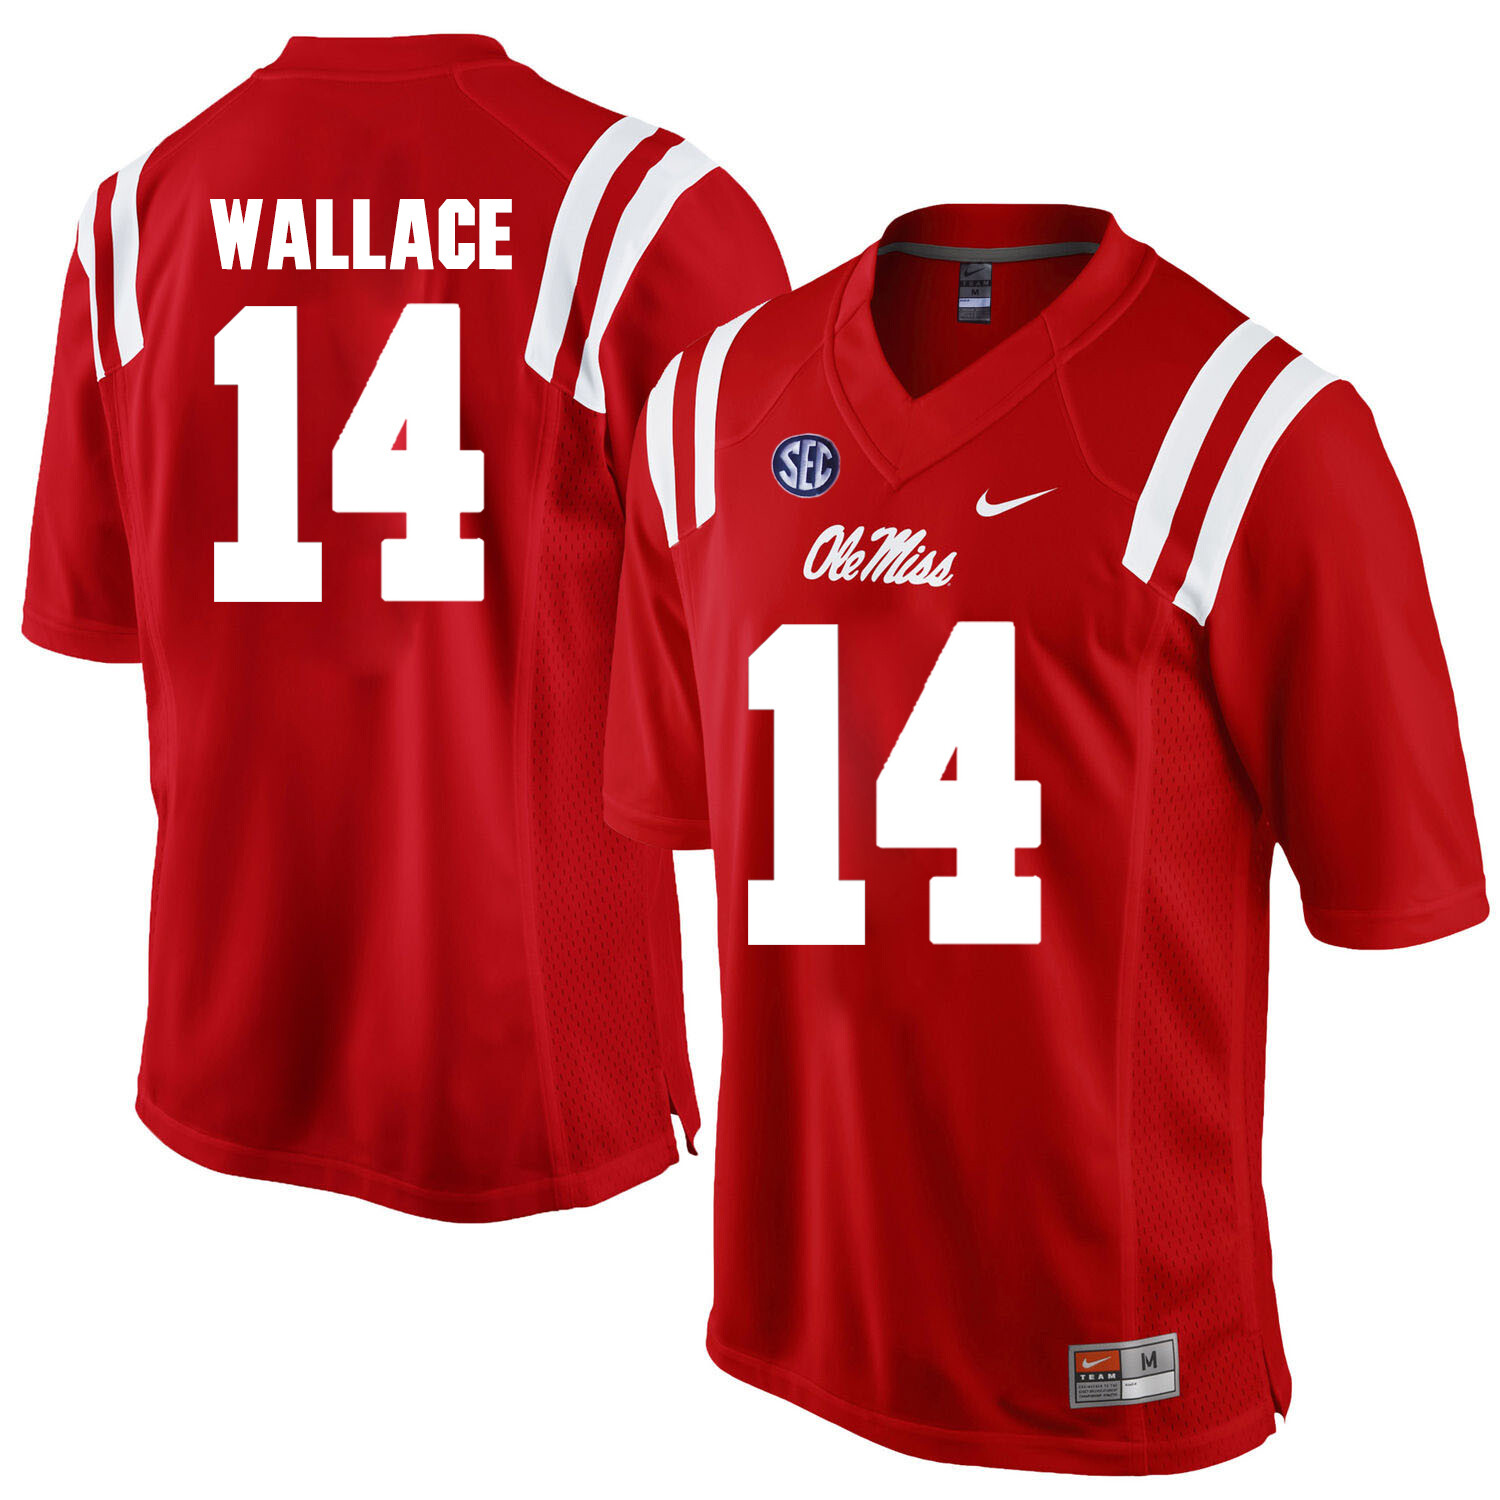 Ole Miss Rebels #14 Mike Wallace NCAA College Football Jersey Red